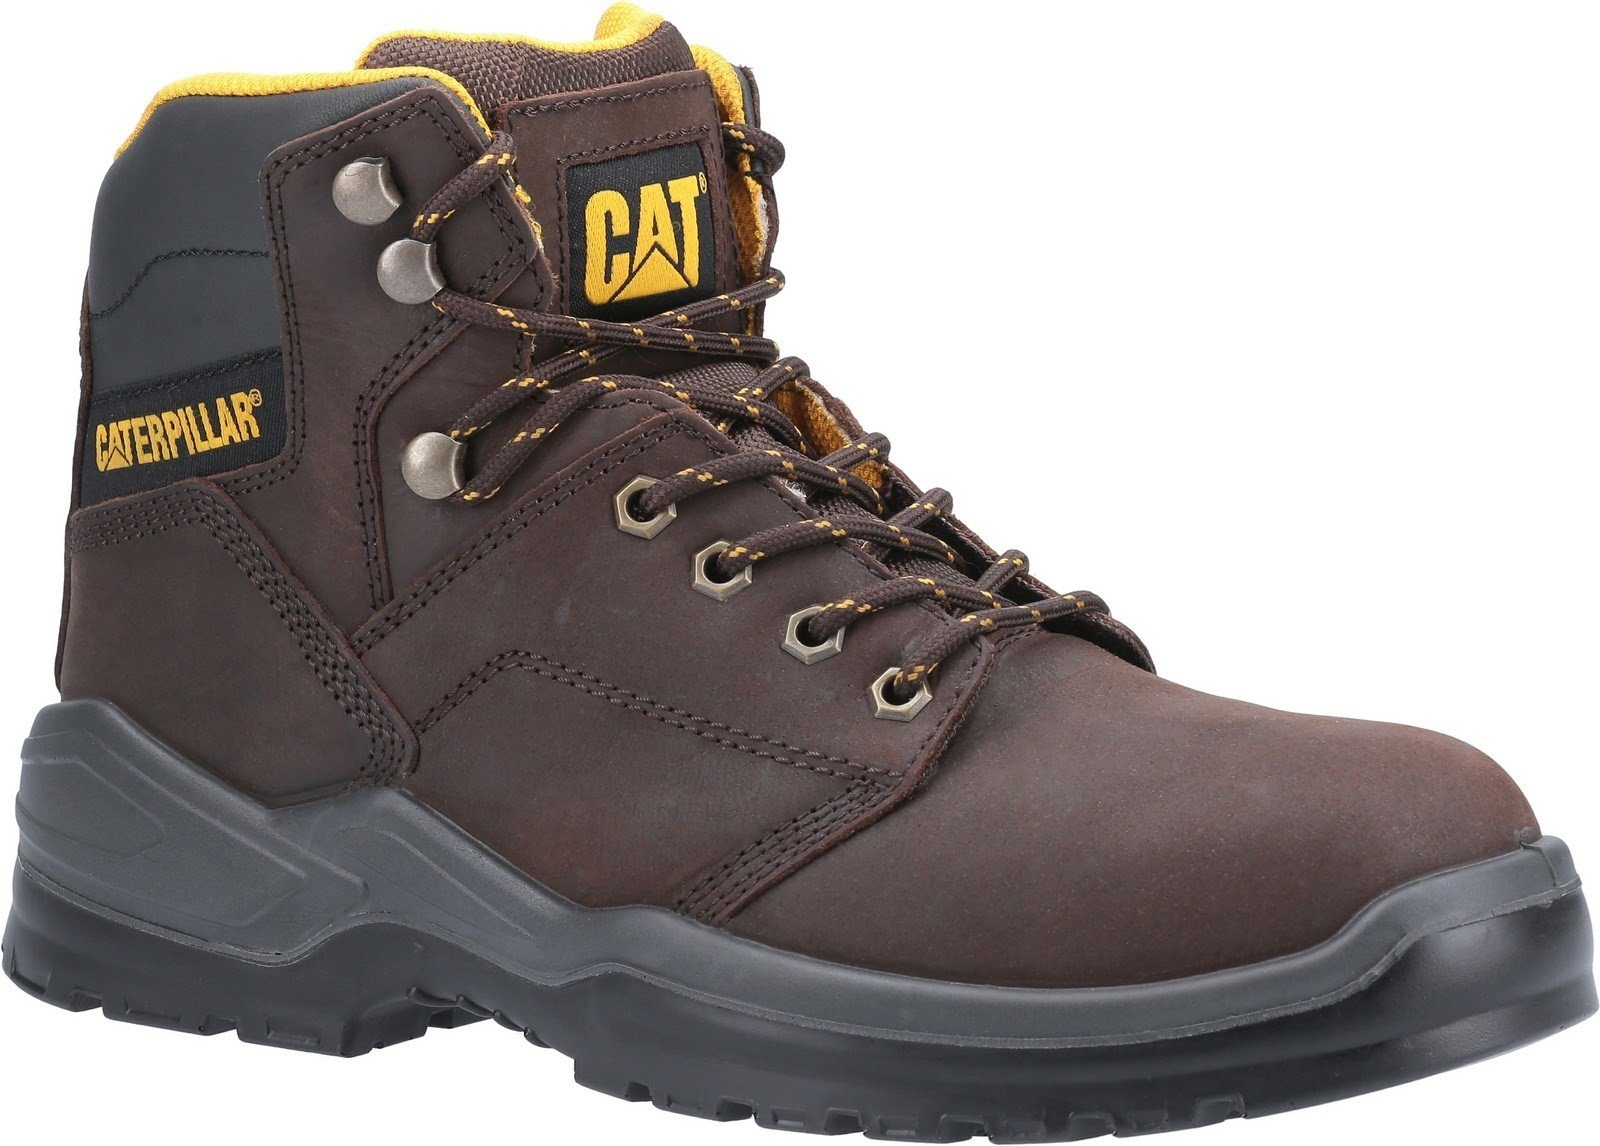 Caterpillar Men's Striver Lace Up Injected Safety Boot Various Colours 30702 - Brown 6